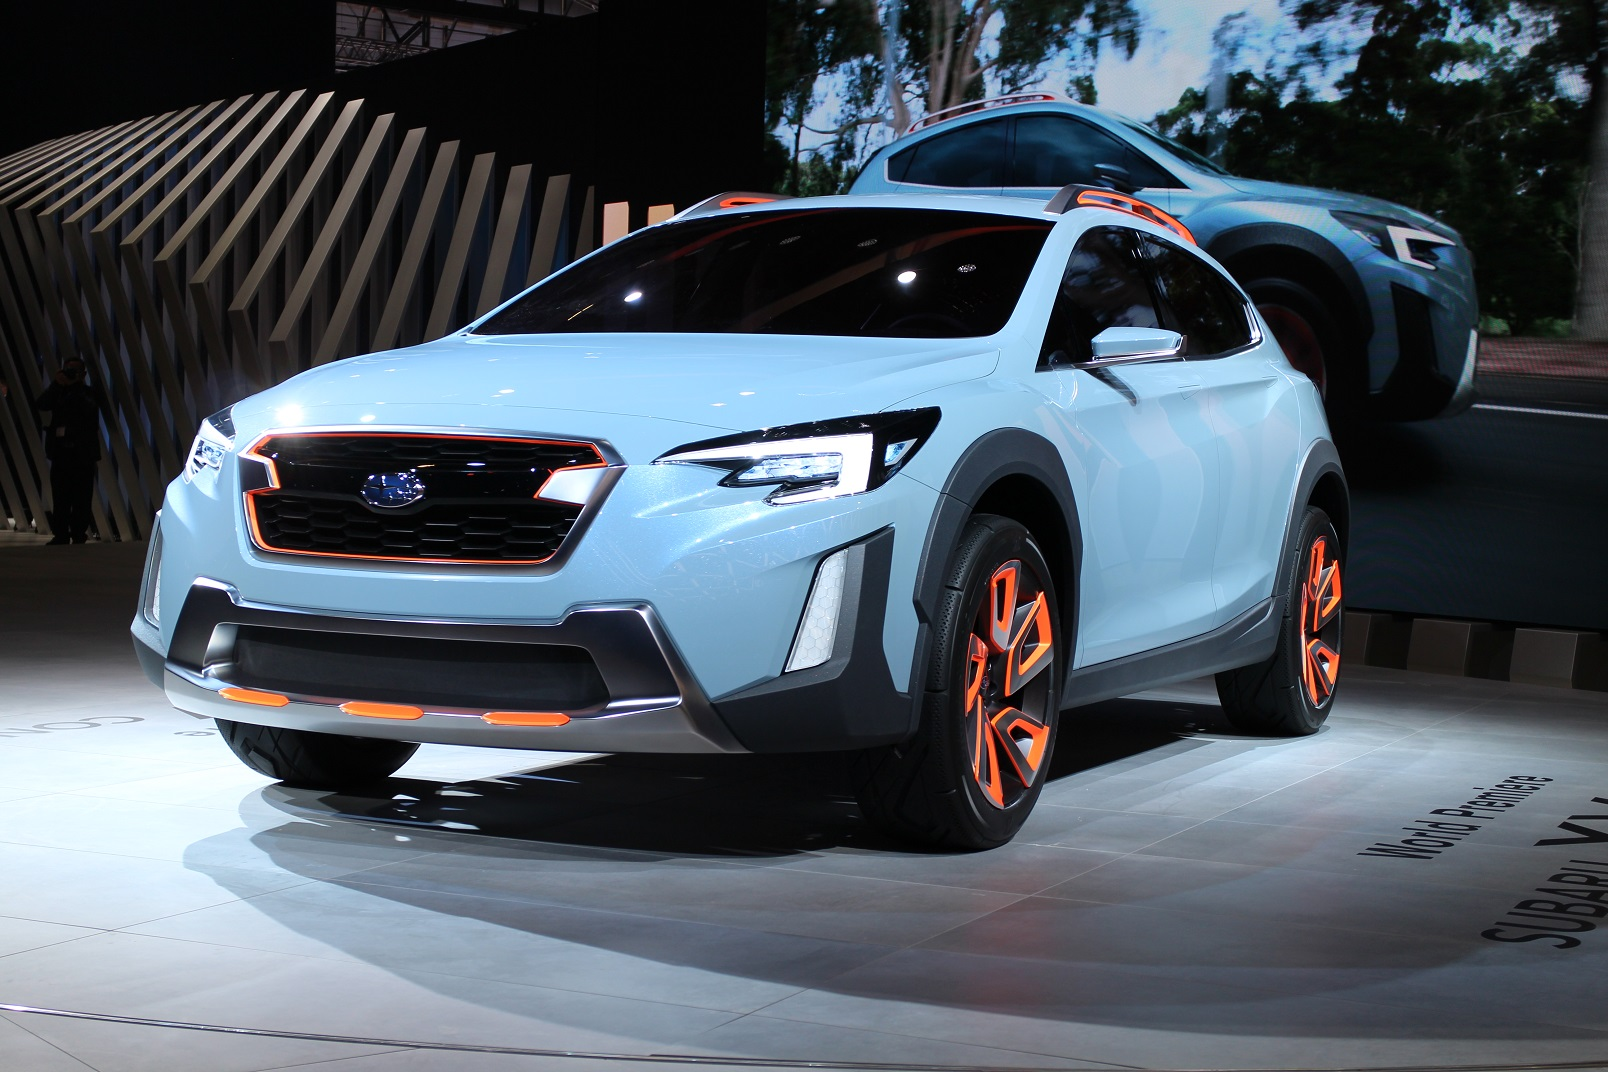 Subaru Xv Concept Hints At Next Crosstrek Due For 2018